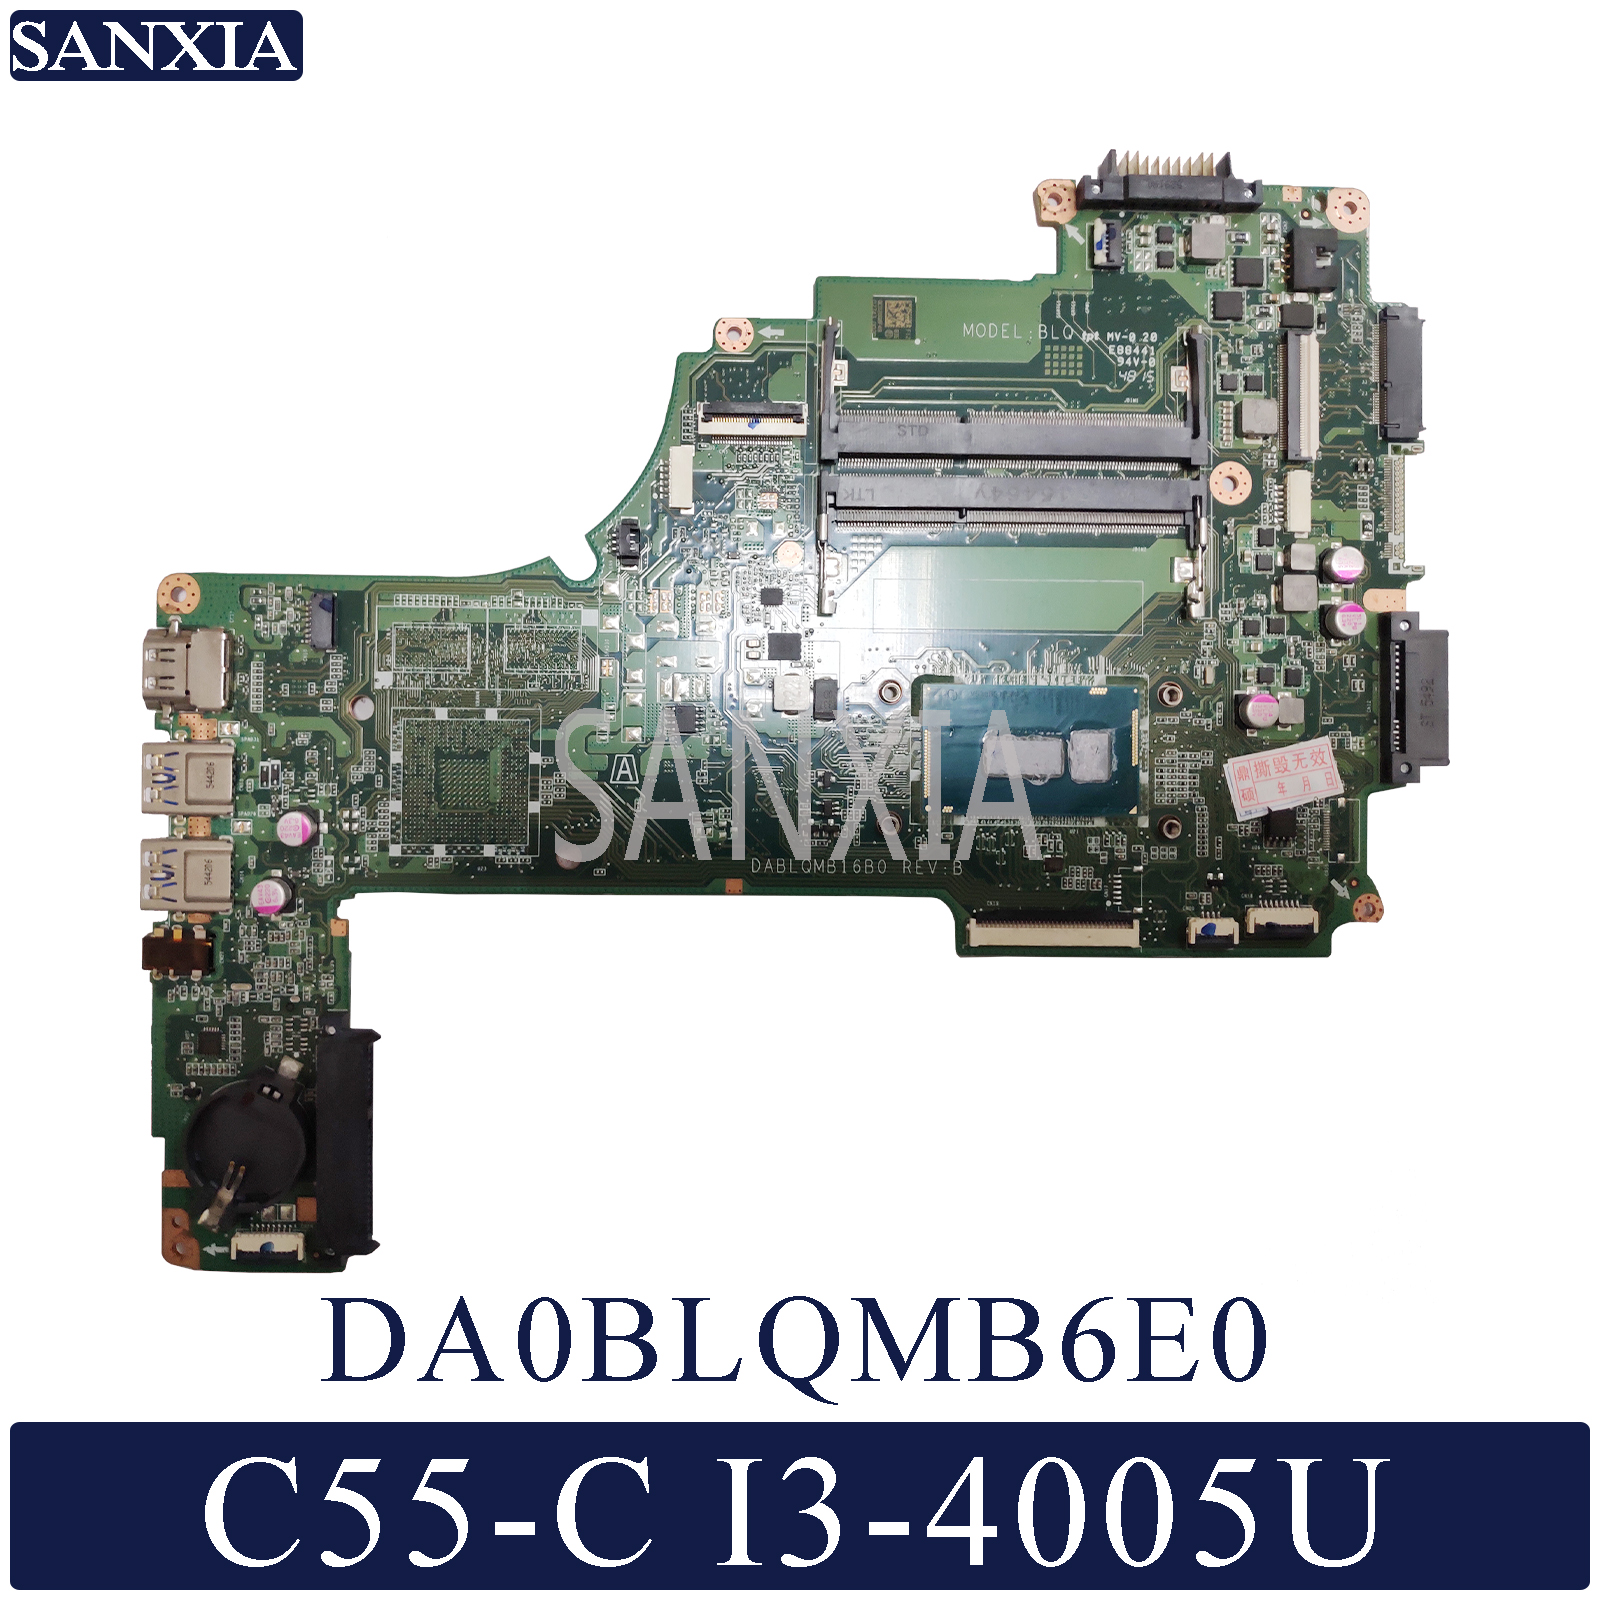 KEFU DA0BLQMB6E0 Laptop <font><b>motherboard</b></font> for <font><b>Toshiba</b></font> <font><b>Satellite</b></font> <font><b>C55</b></font>-C original mainboard I3-4005U image